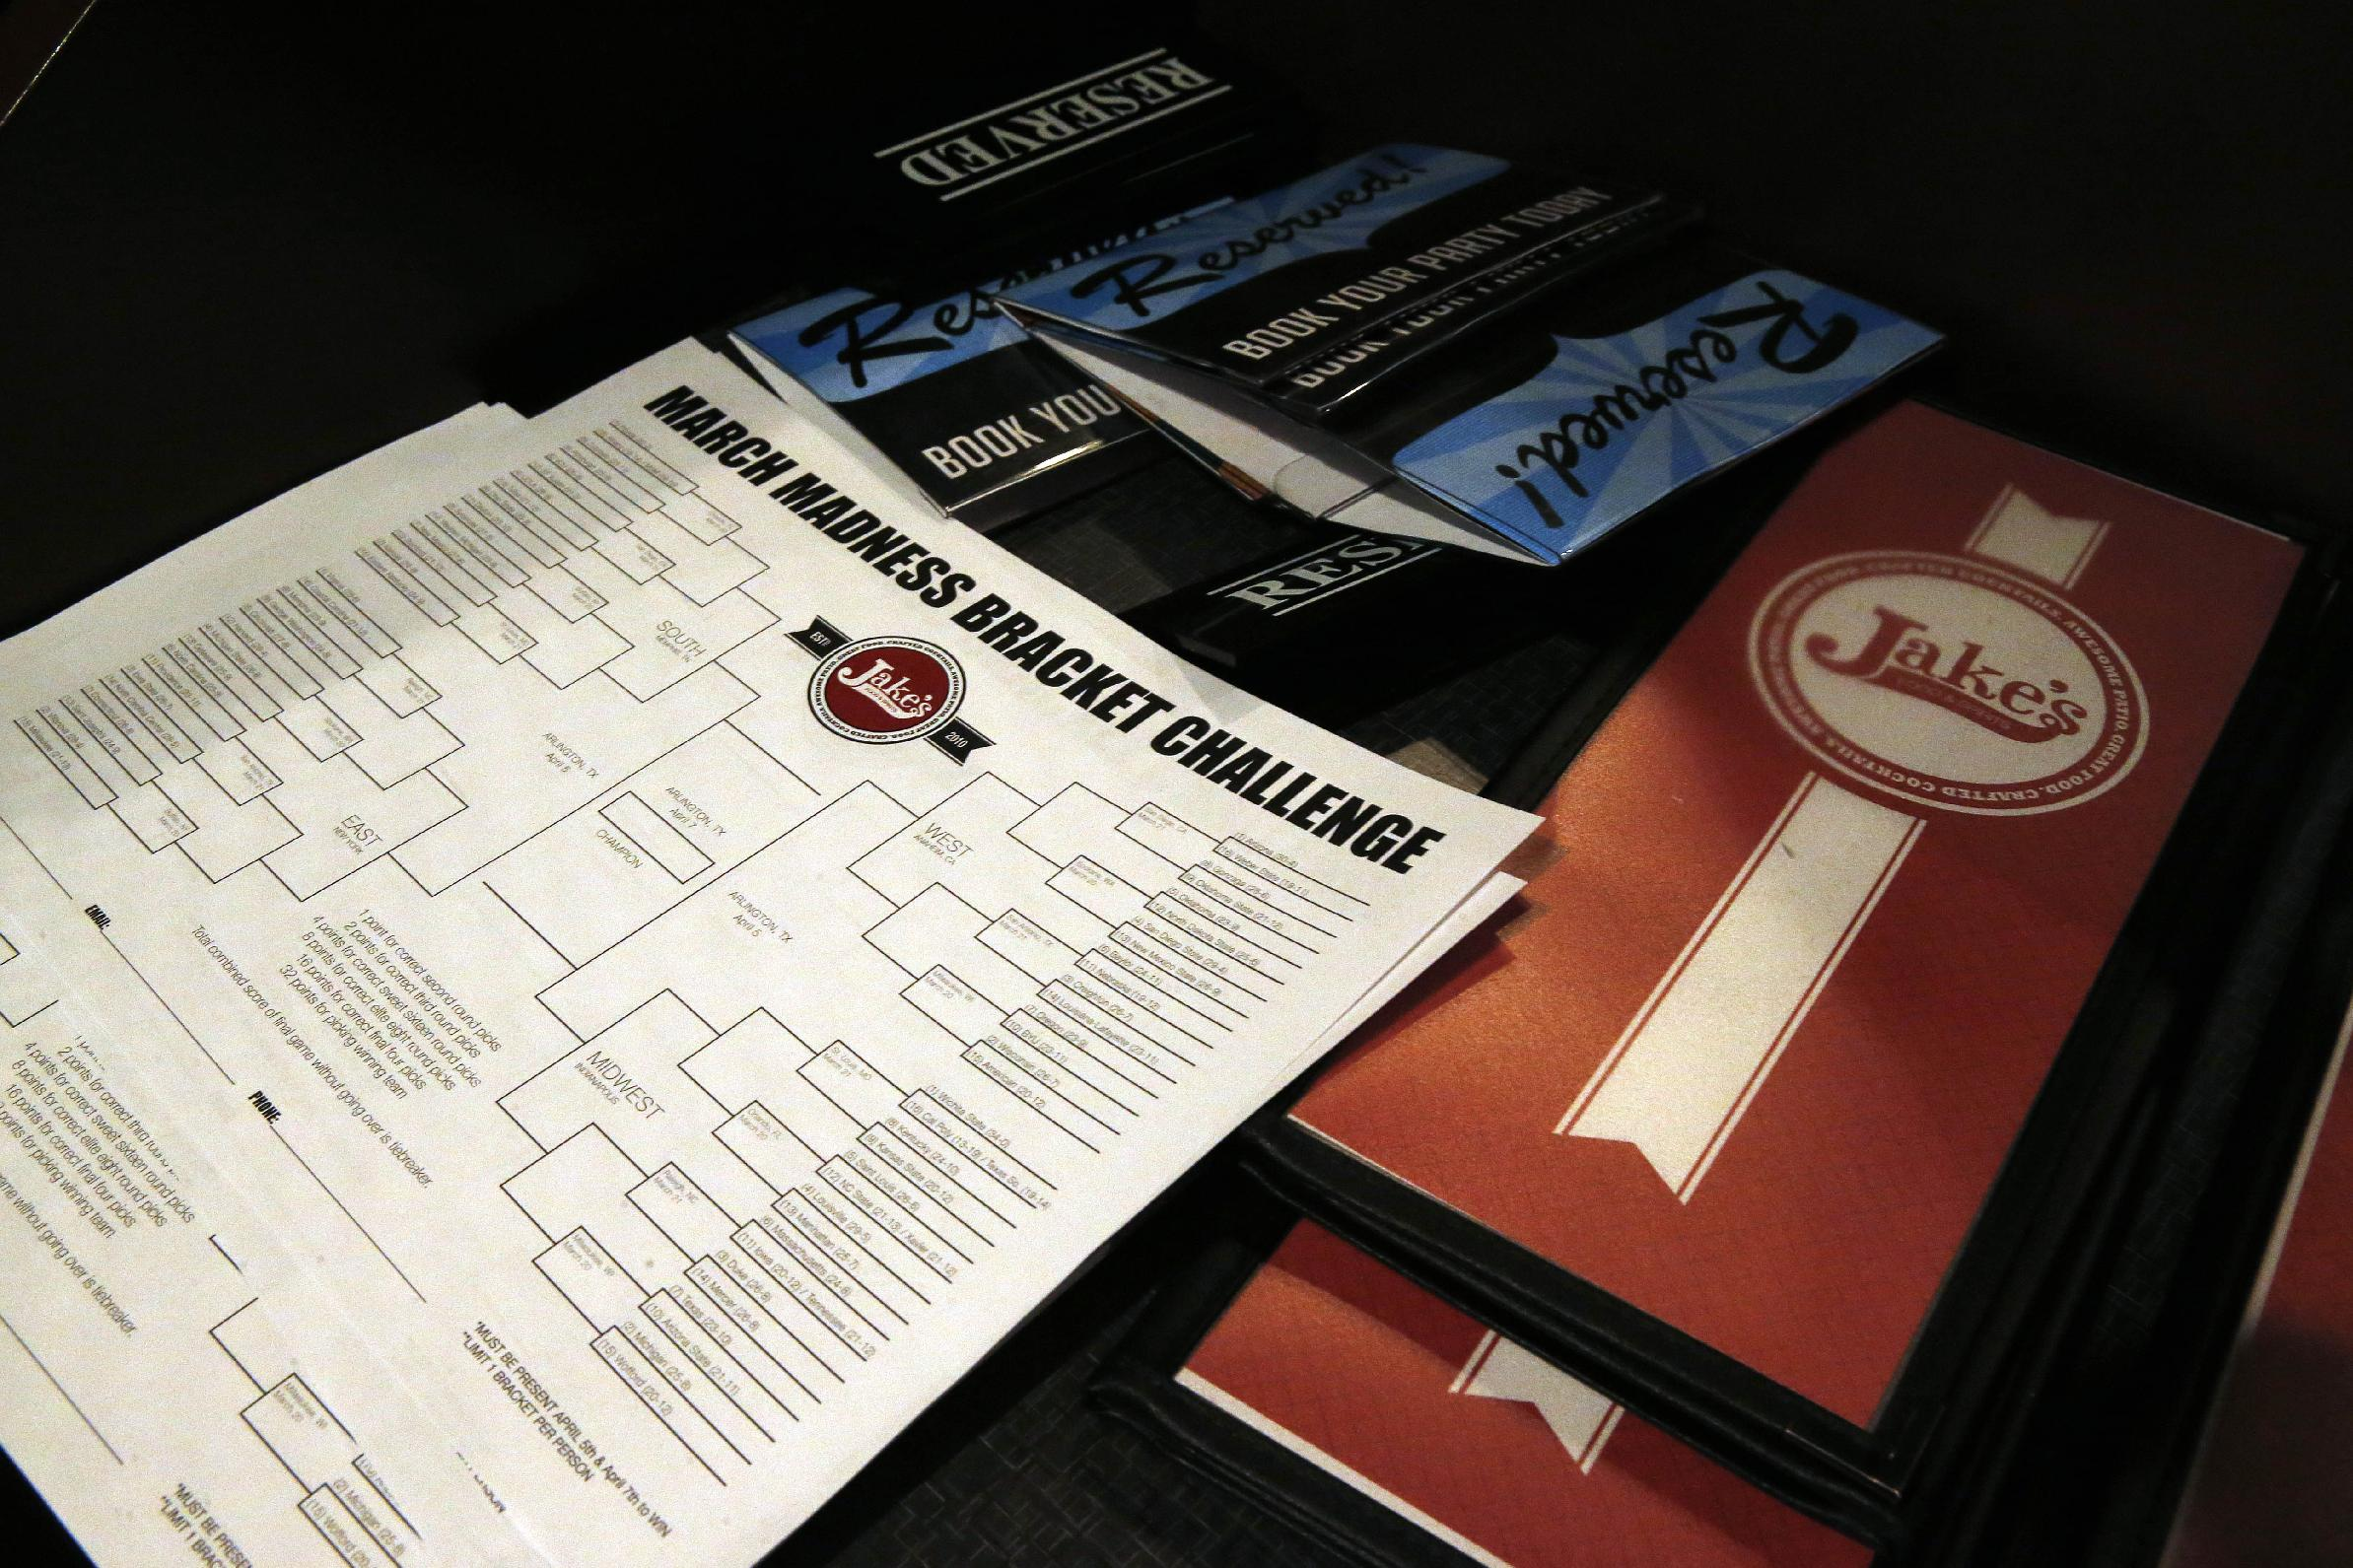 A stack of blank NCAA brackets sits with menus, available to patrons at Jake's sports bar, in Denver, Monday March 17, 2014. Warren Buffett has promised a billion dollars for a perfect NCAA bracket, the chances of which are astronomically small. The NCAA March Madness tournament is to begin Tuesday